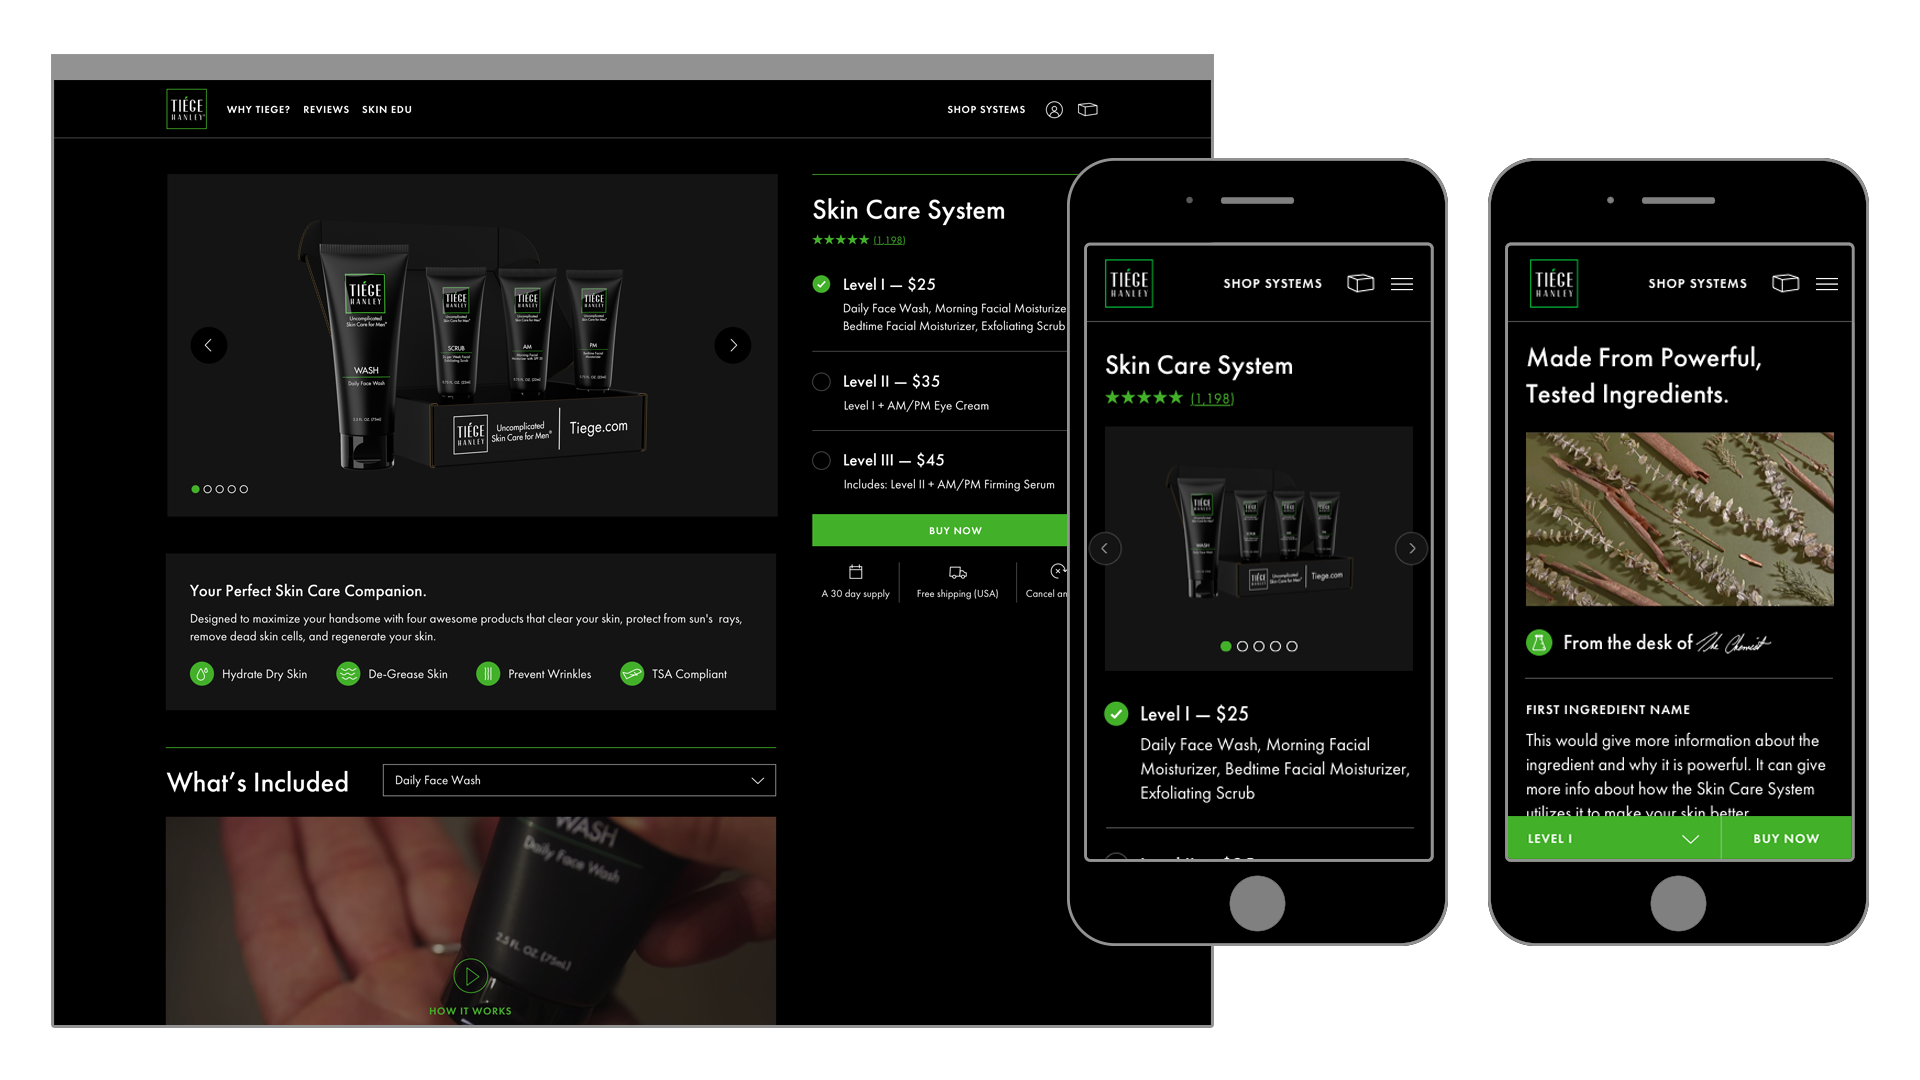 Tiege Hanley Product Detail Page for Skin Care System